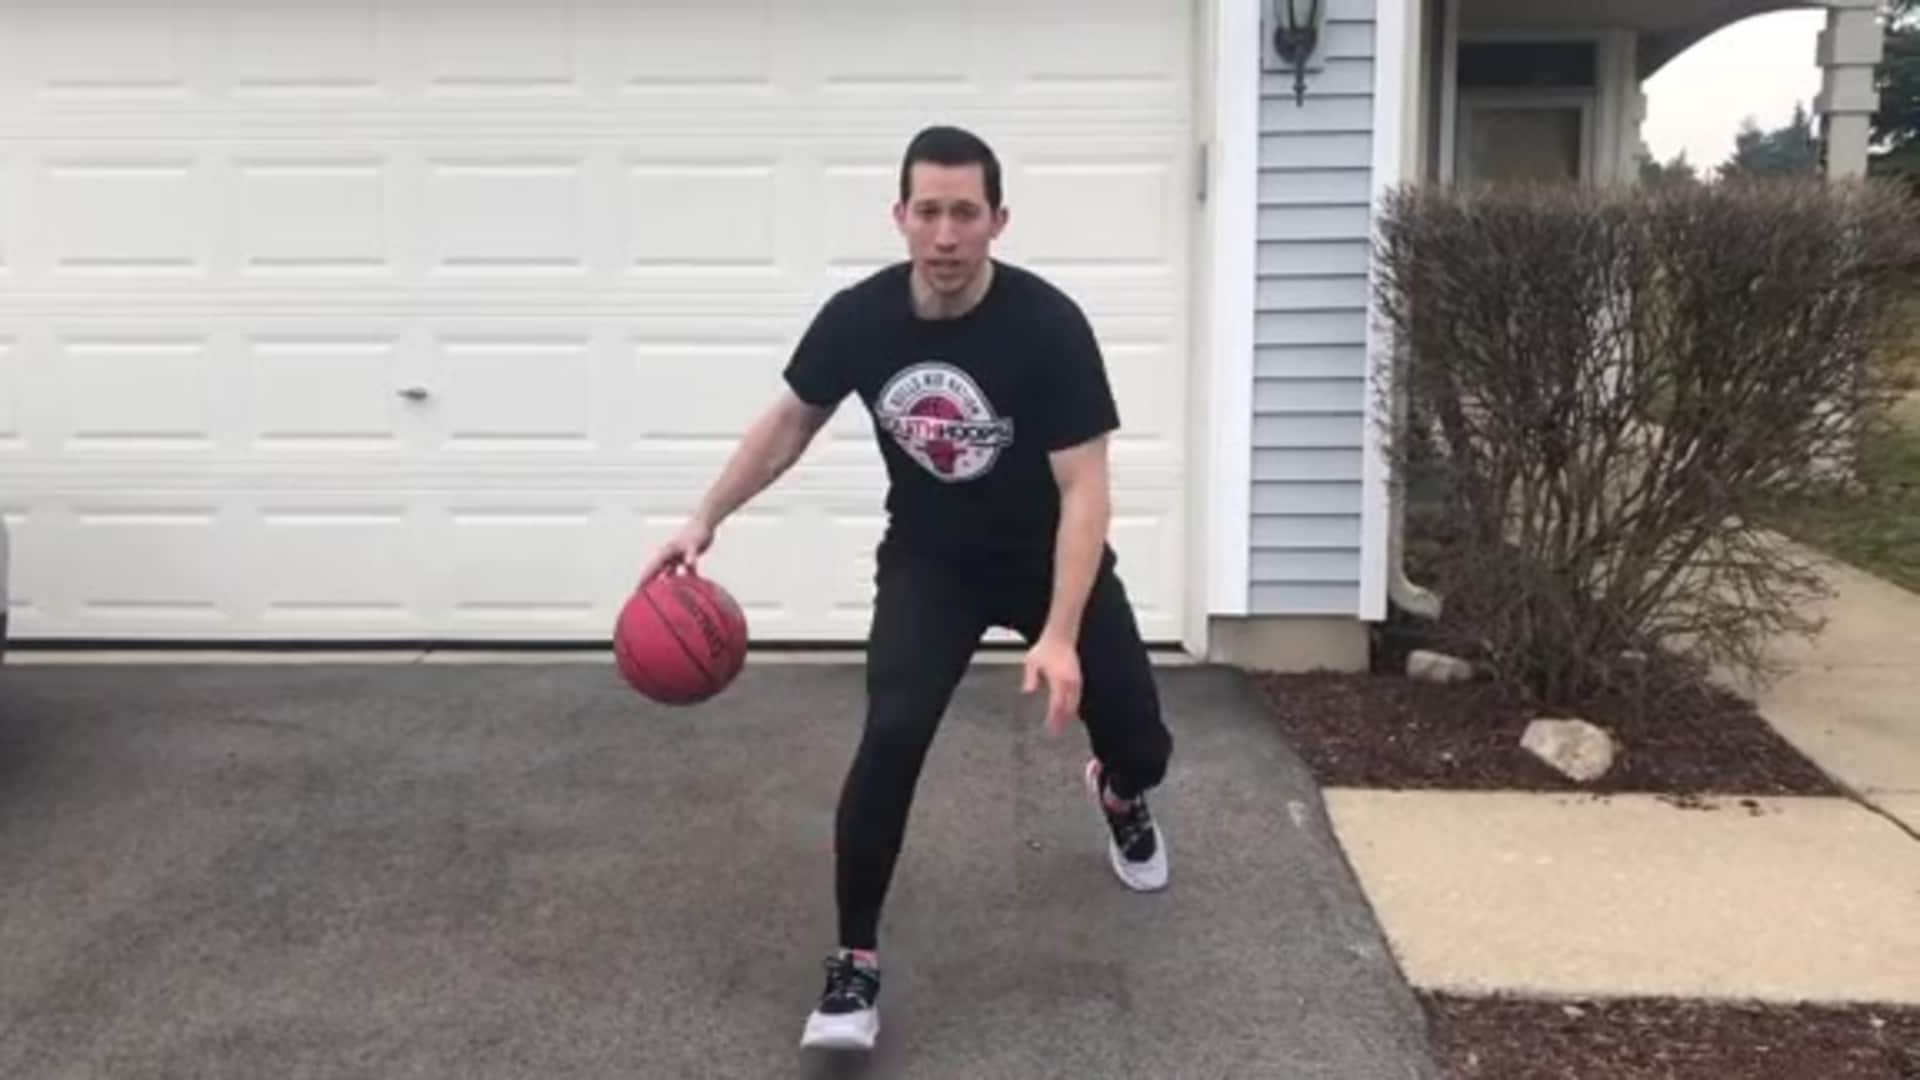 Youth Hoops Basketball Skills At Home: Between The Legs